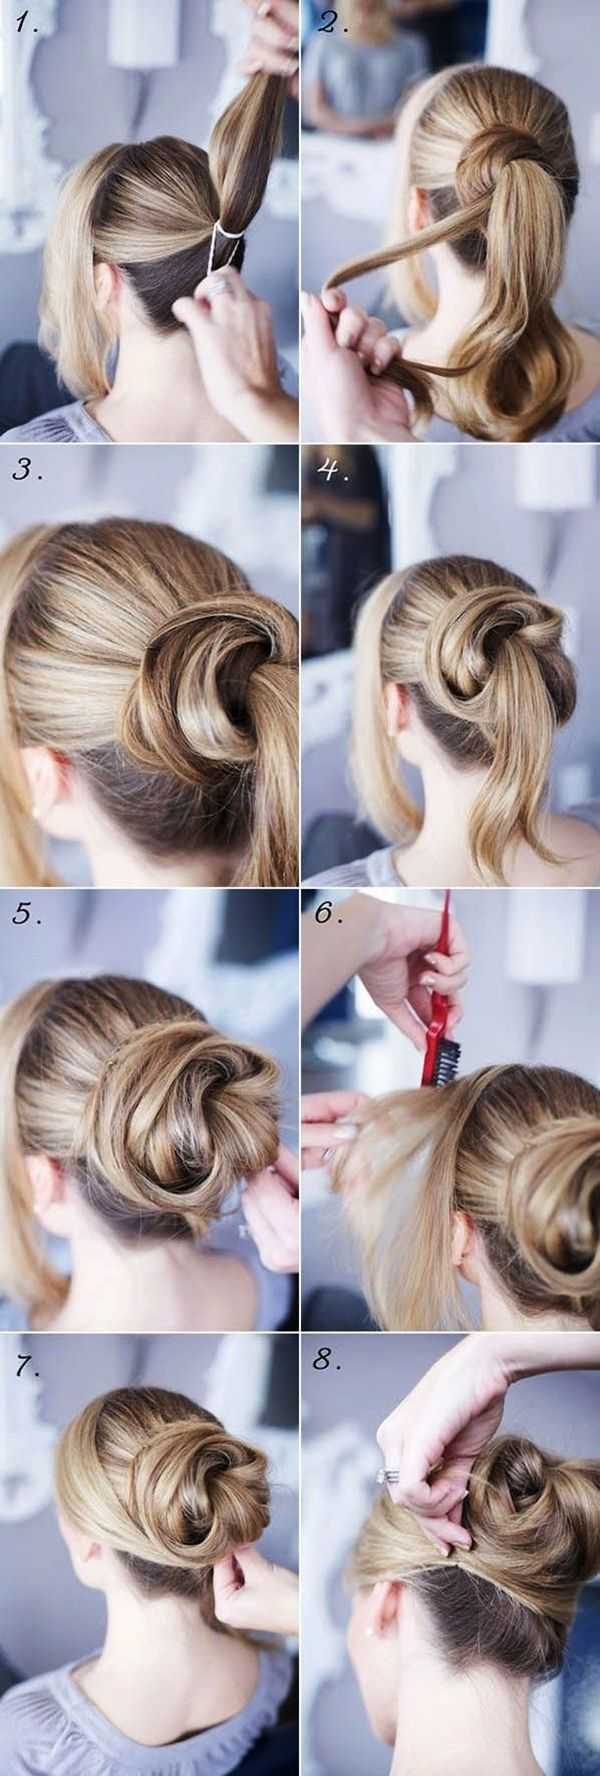 15 Easy Step By Step Hairstyles for Long Hair | Hair style ...